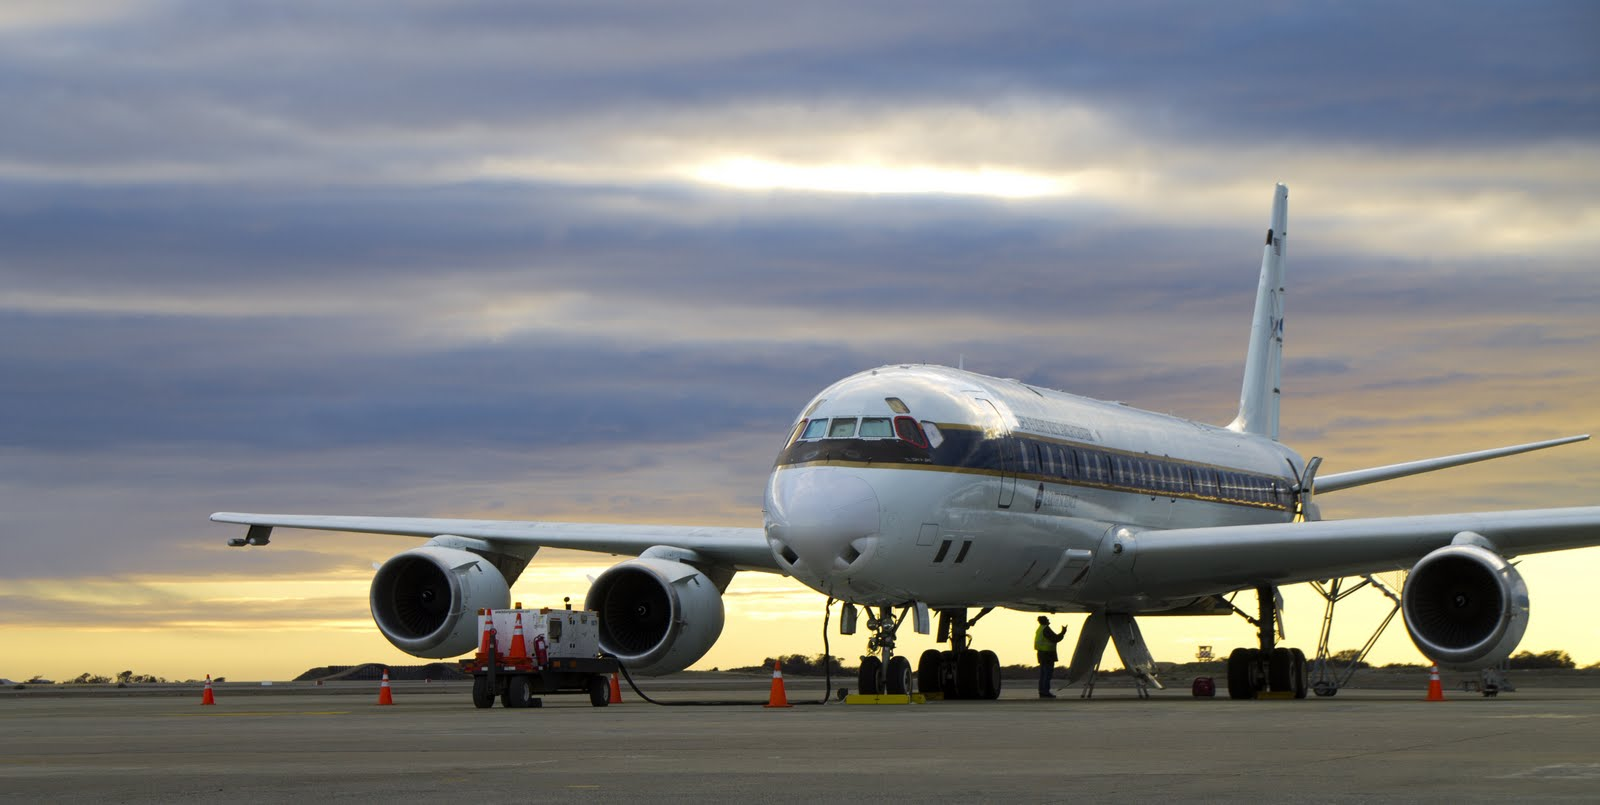 The IceBridge DC-8 undergoing final preparations for the first Antarctic campaign flight of 2012.